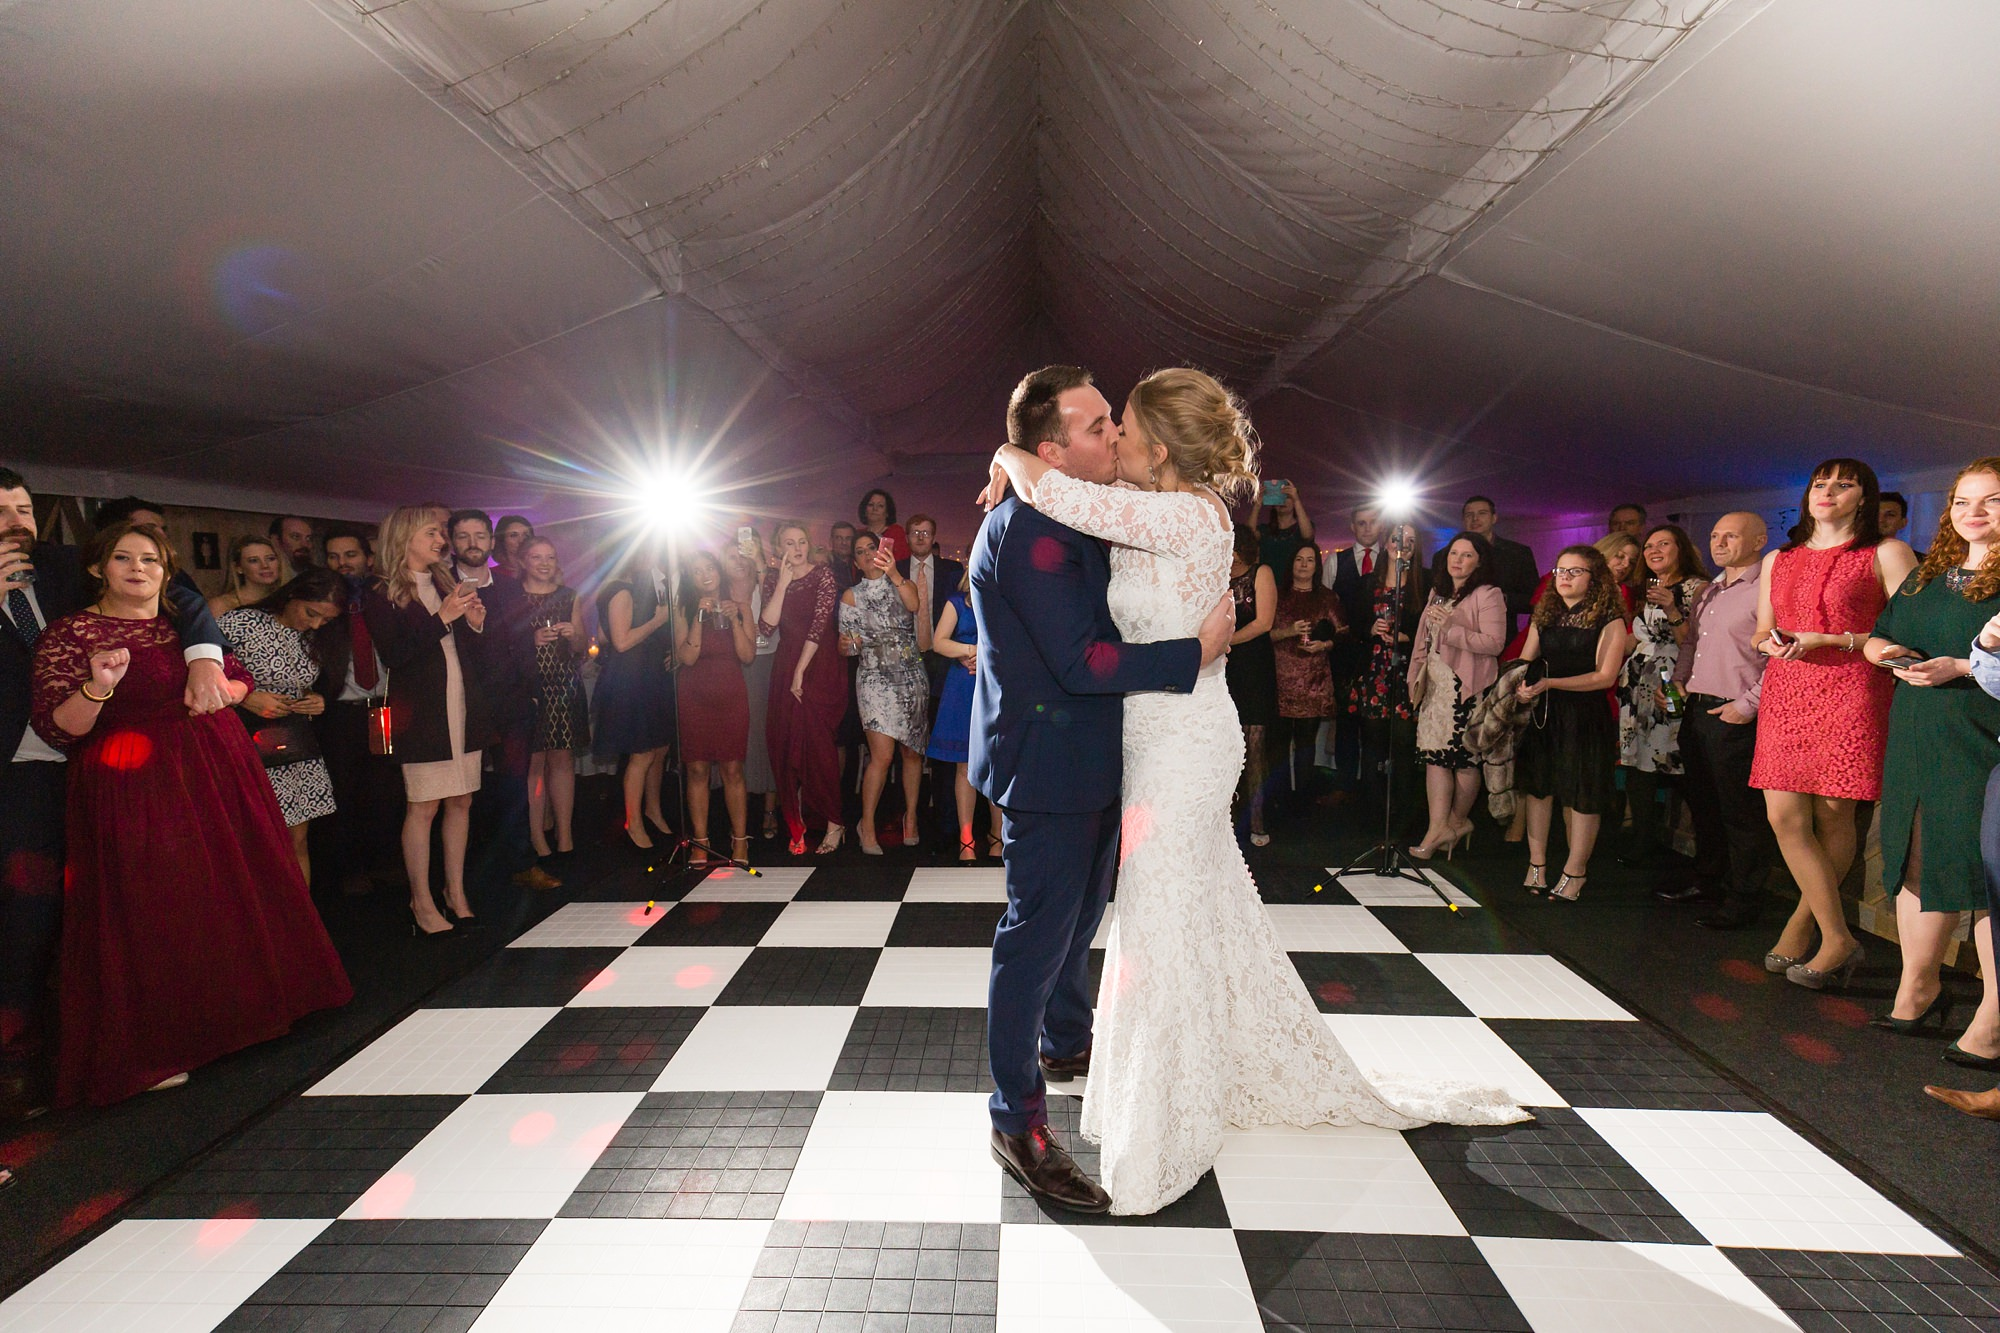 Bride & Grooms first dance on chequered dance floor at The Normans